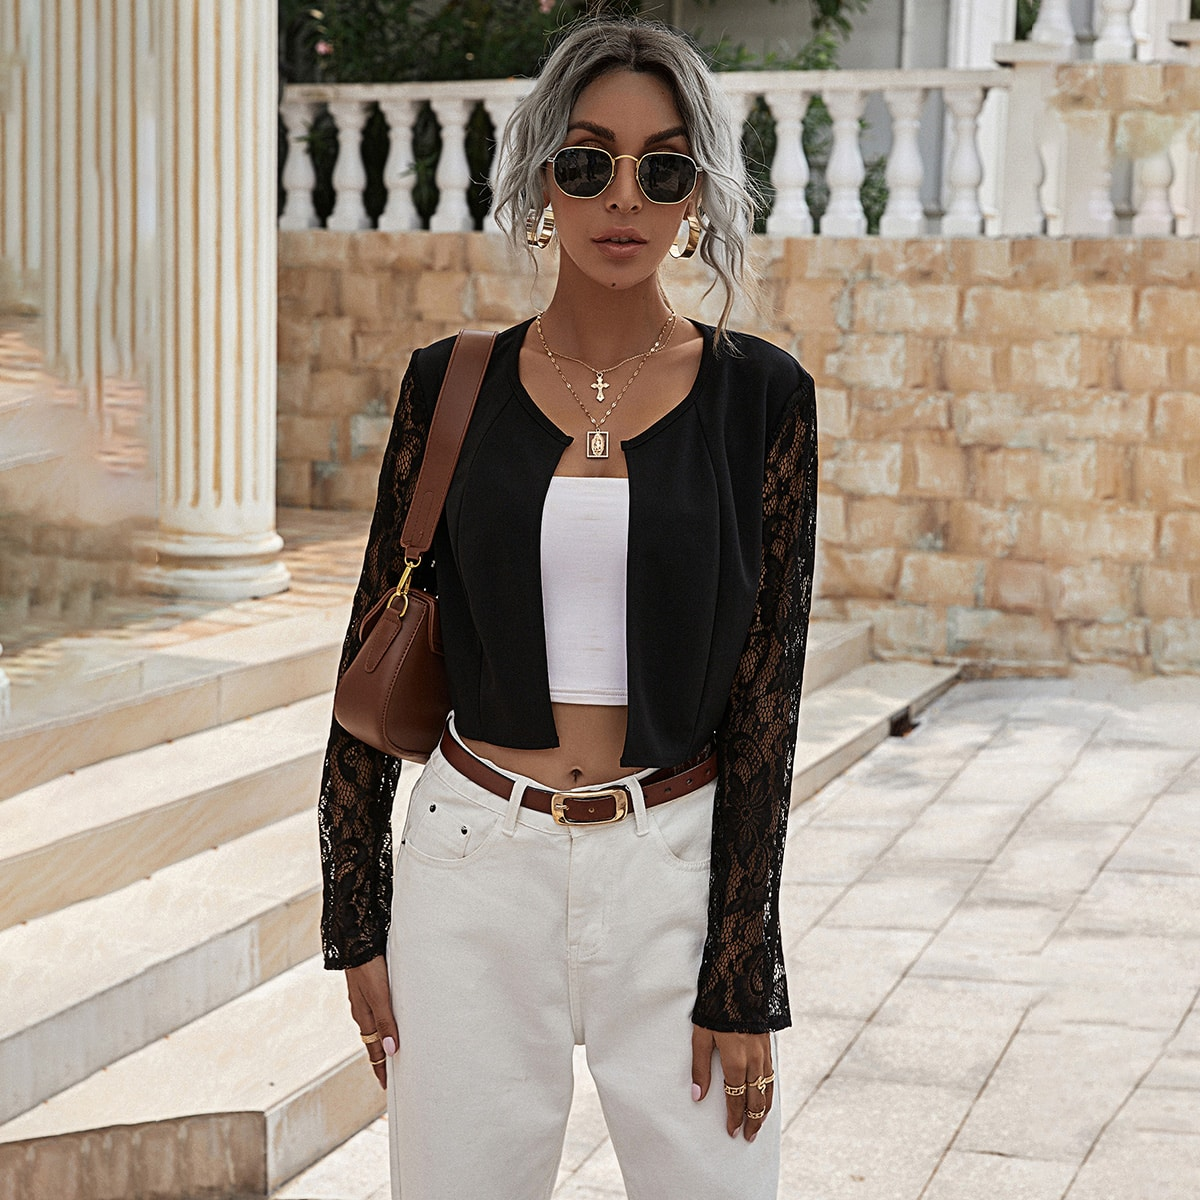 shein Casual Vlak Jas Contract kant